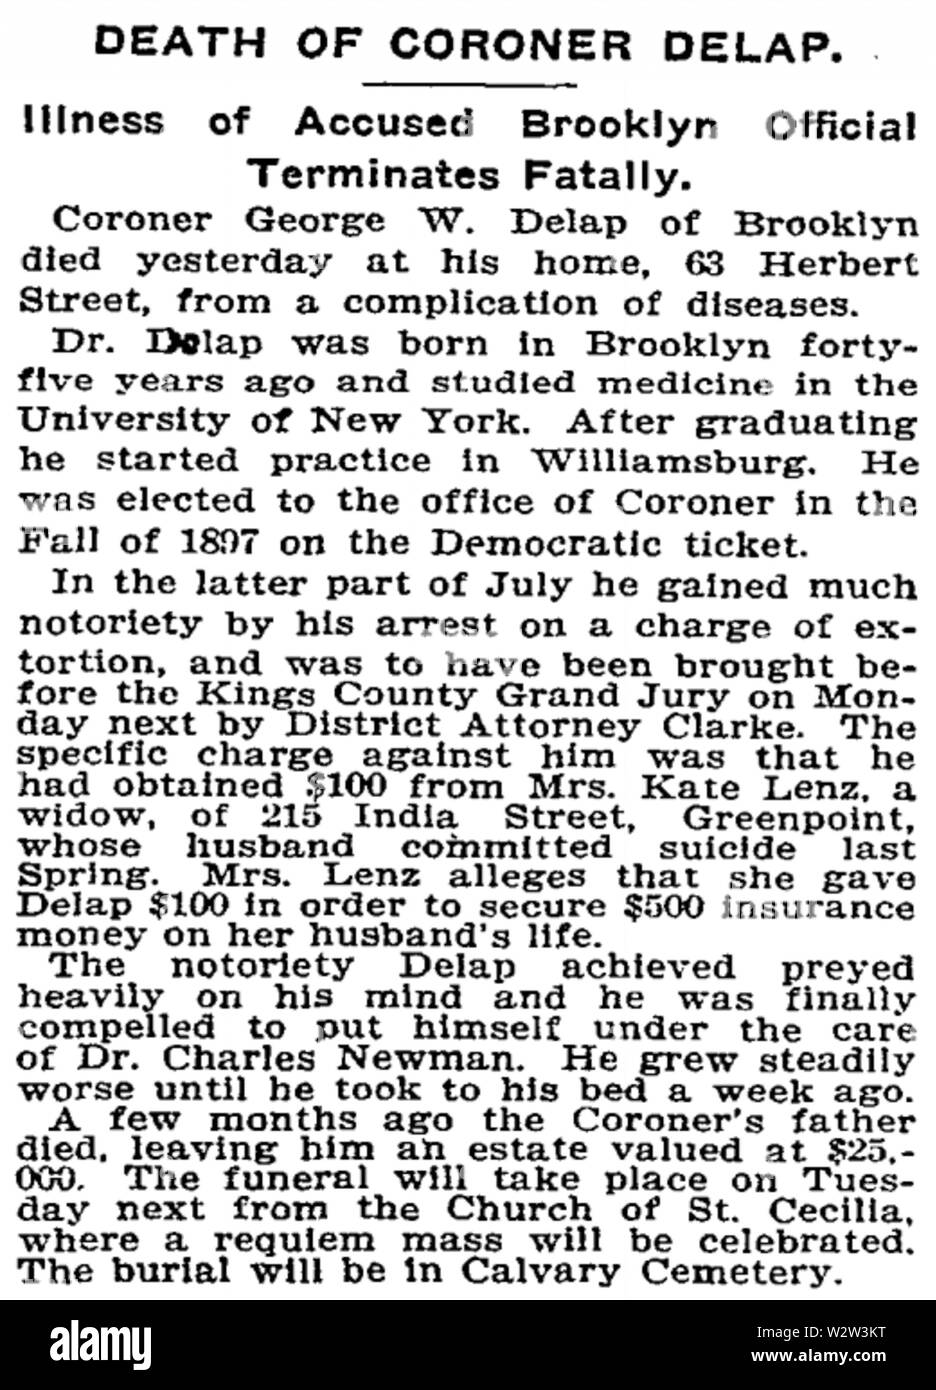 George Washington Delap, MD (1857-1901) obituary in the New